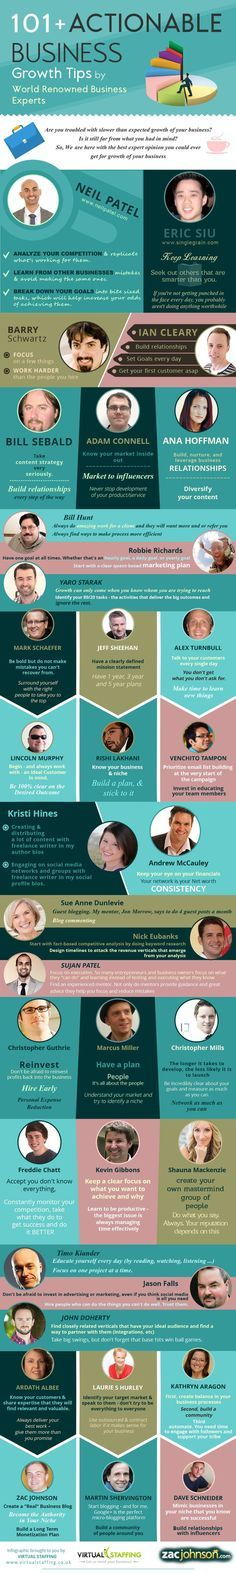 101 Actionable Growth Tips from Business Experts